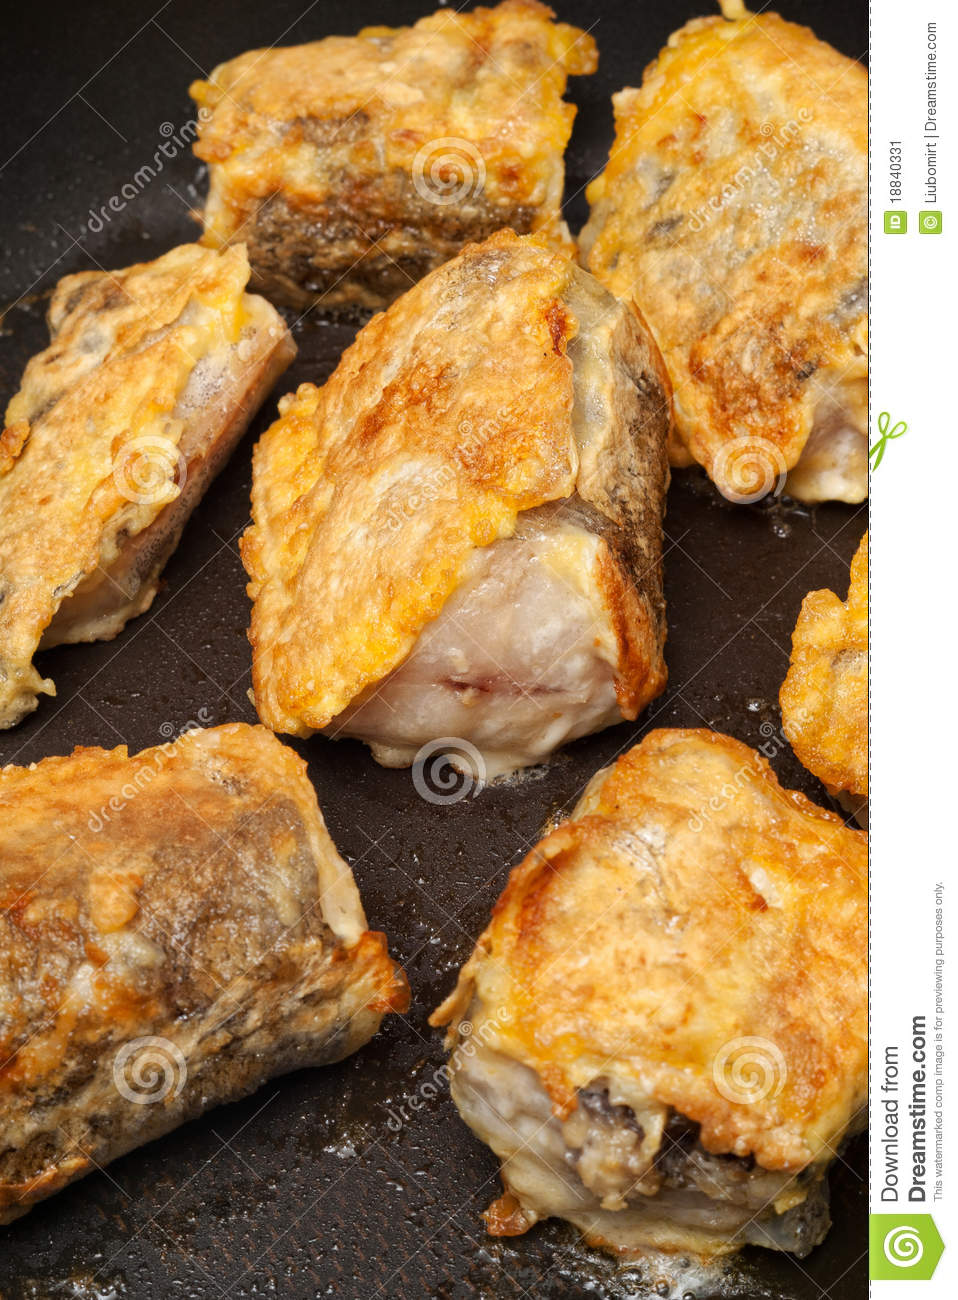 Fried battered fish stock image image 18840331 for How to fry fish with egg and flour